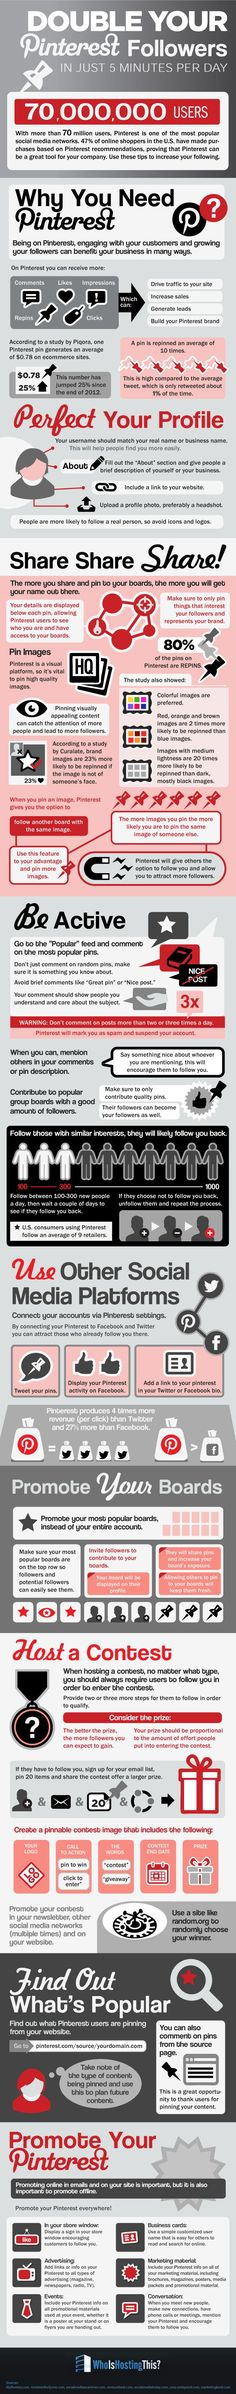 Great tips in this infographic for increasing your Pinterest followers in a few minutes per day | social media | marketing | Pinterest http://www.socialfresh.com